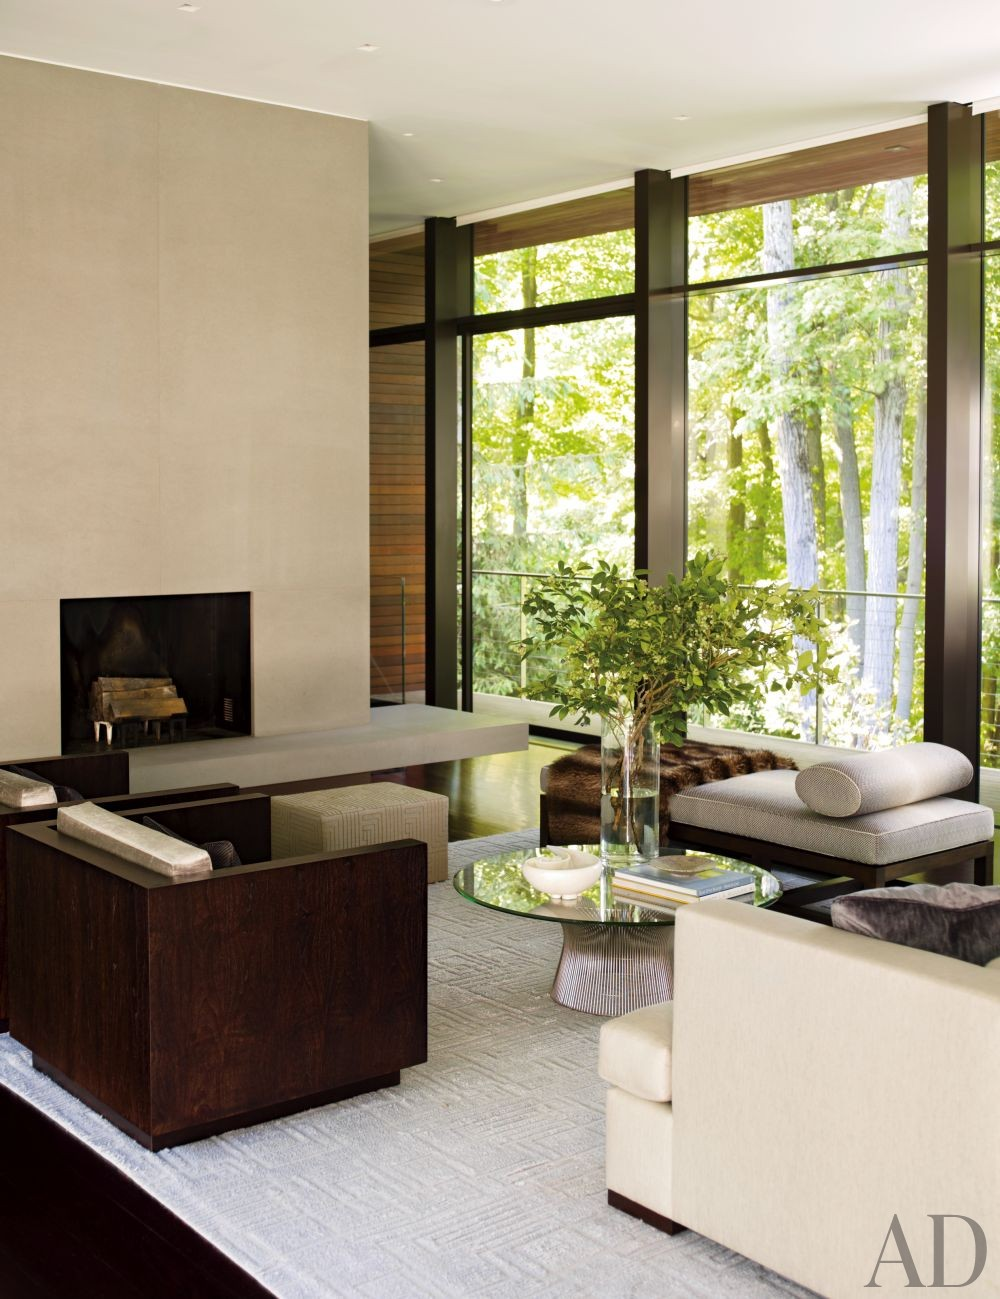 Modern Living Room by Carrier and Co. Interiors and Specht Harpman Architects in New Canaan, Connecticut